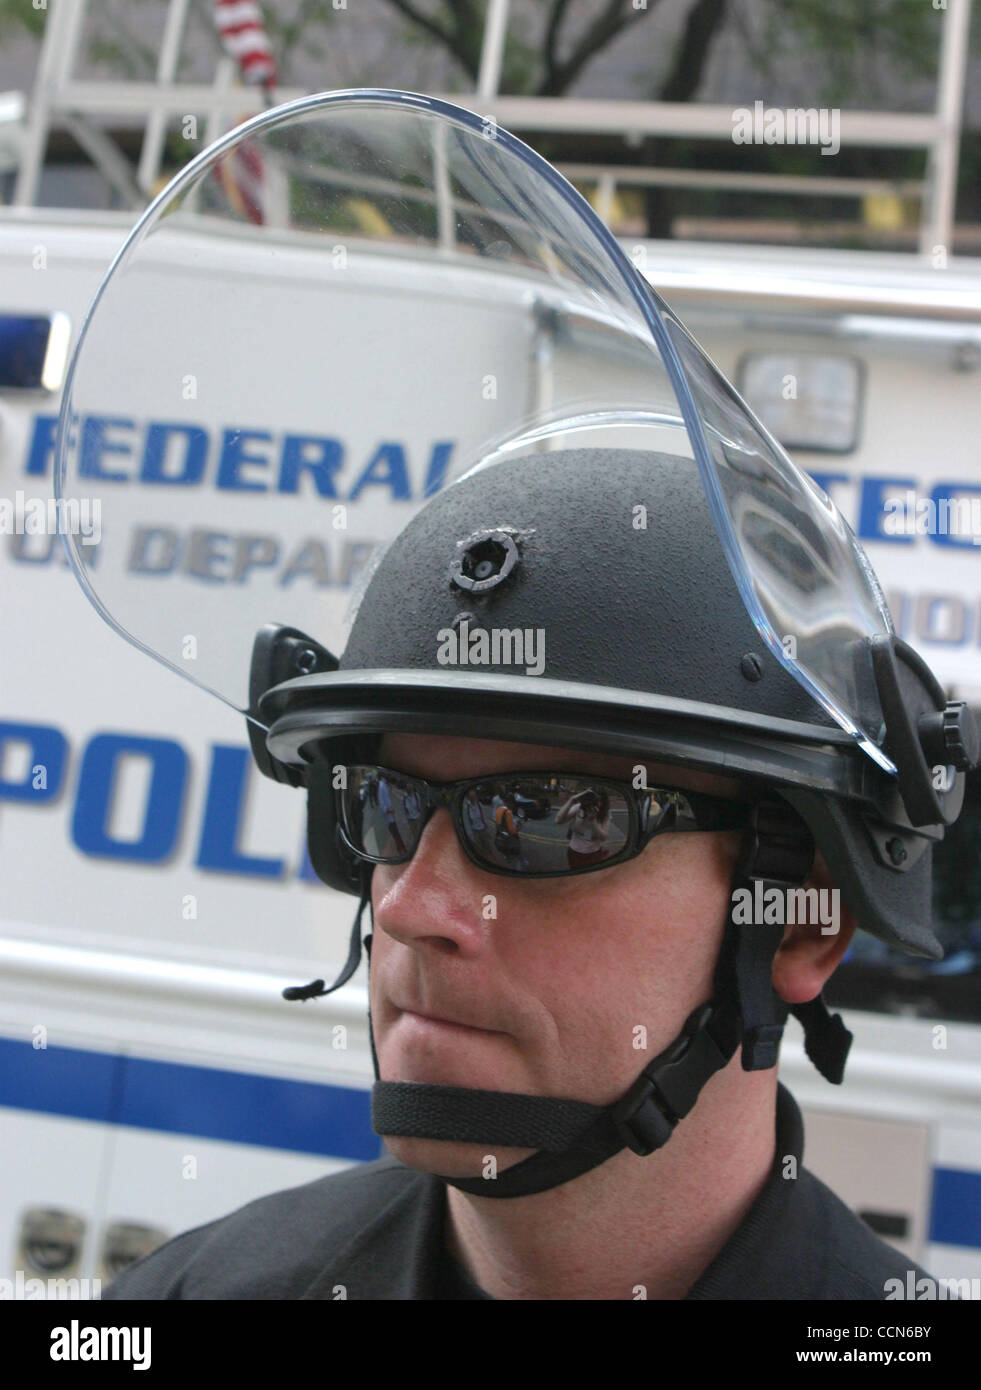 Aug 25, 2004; New York, NY, USA;  A view police officer wearing a helmutcam which allows hidden video surveillance Stock Photo